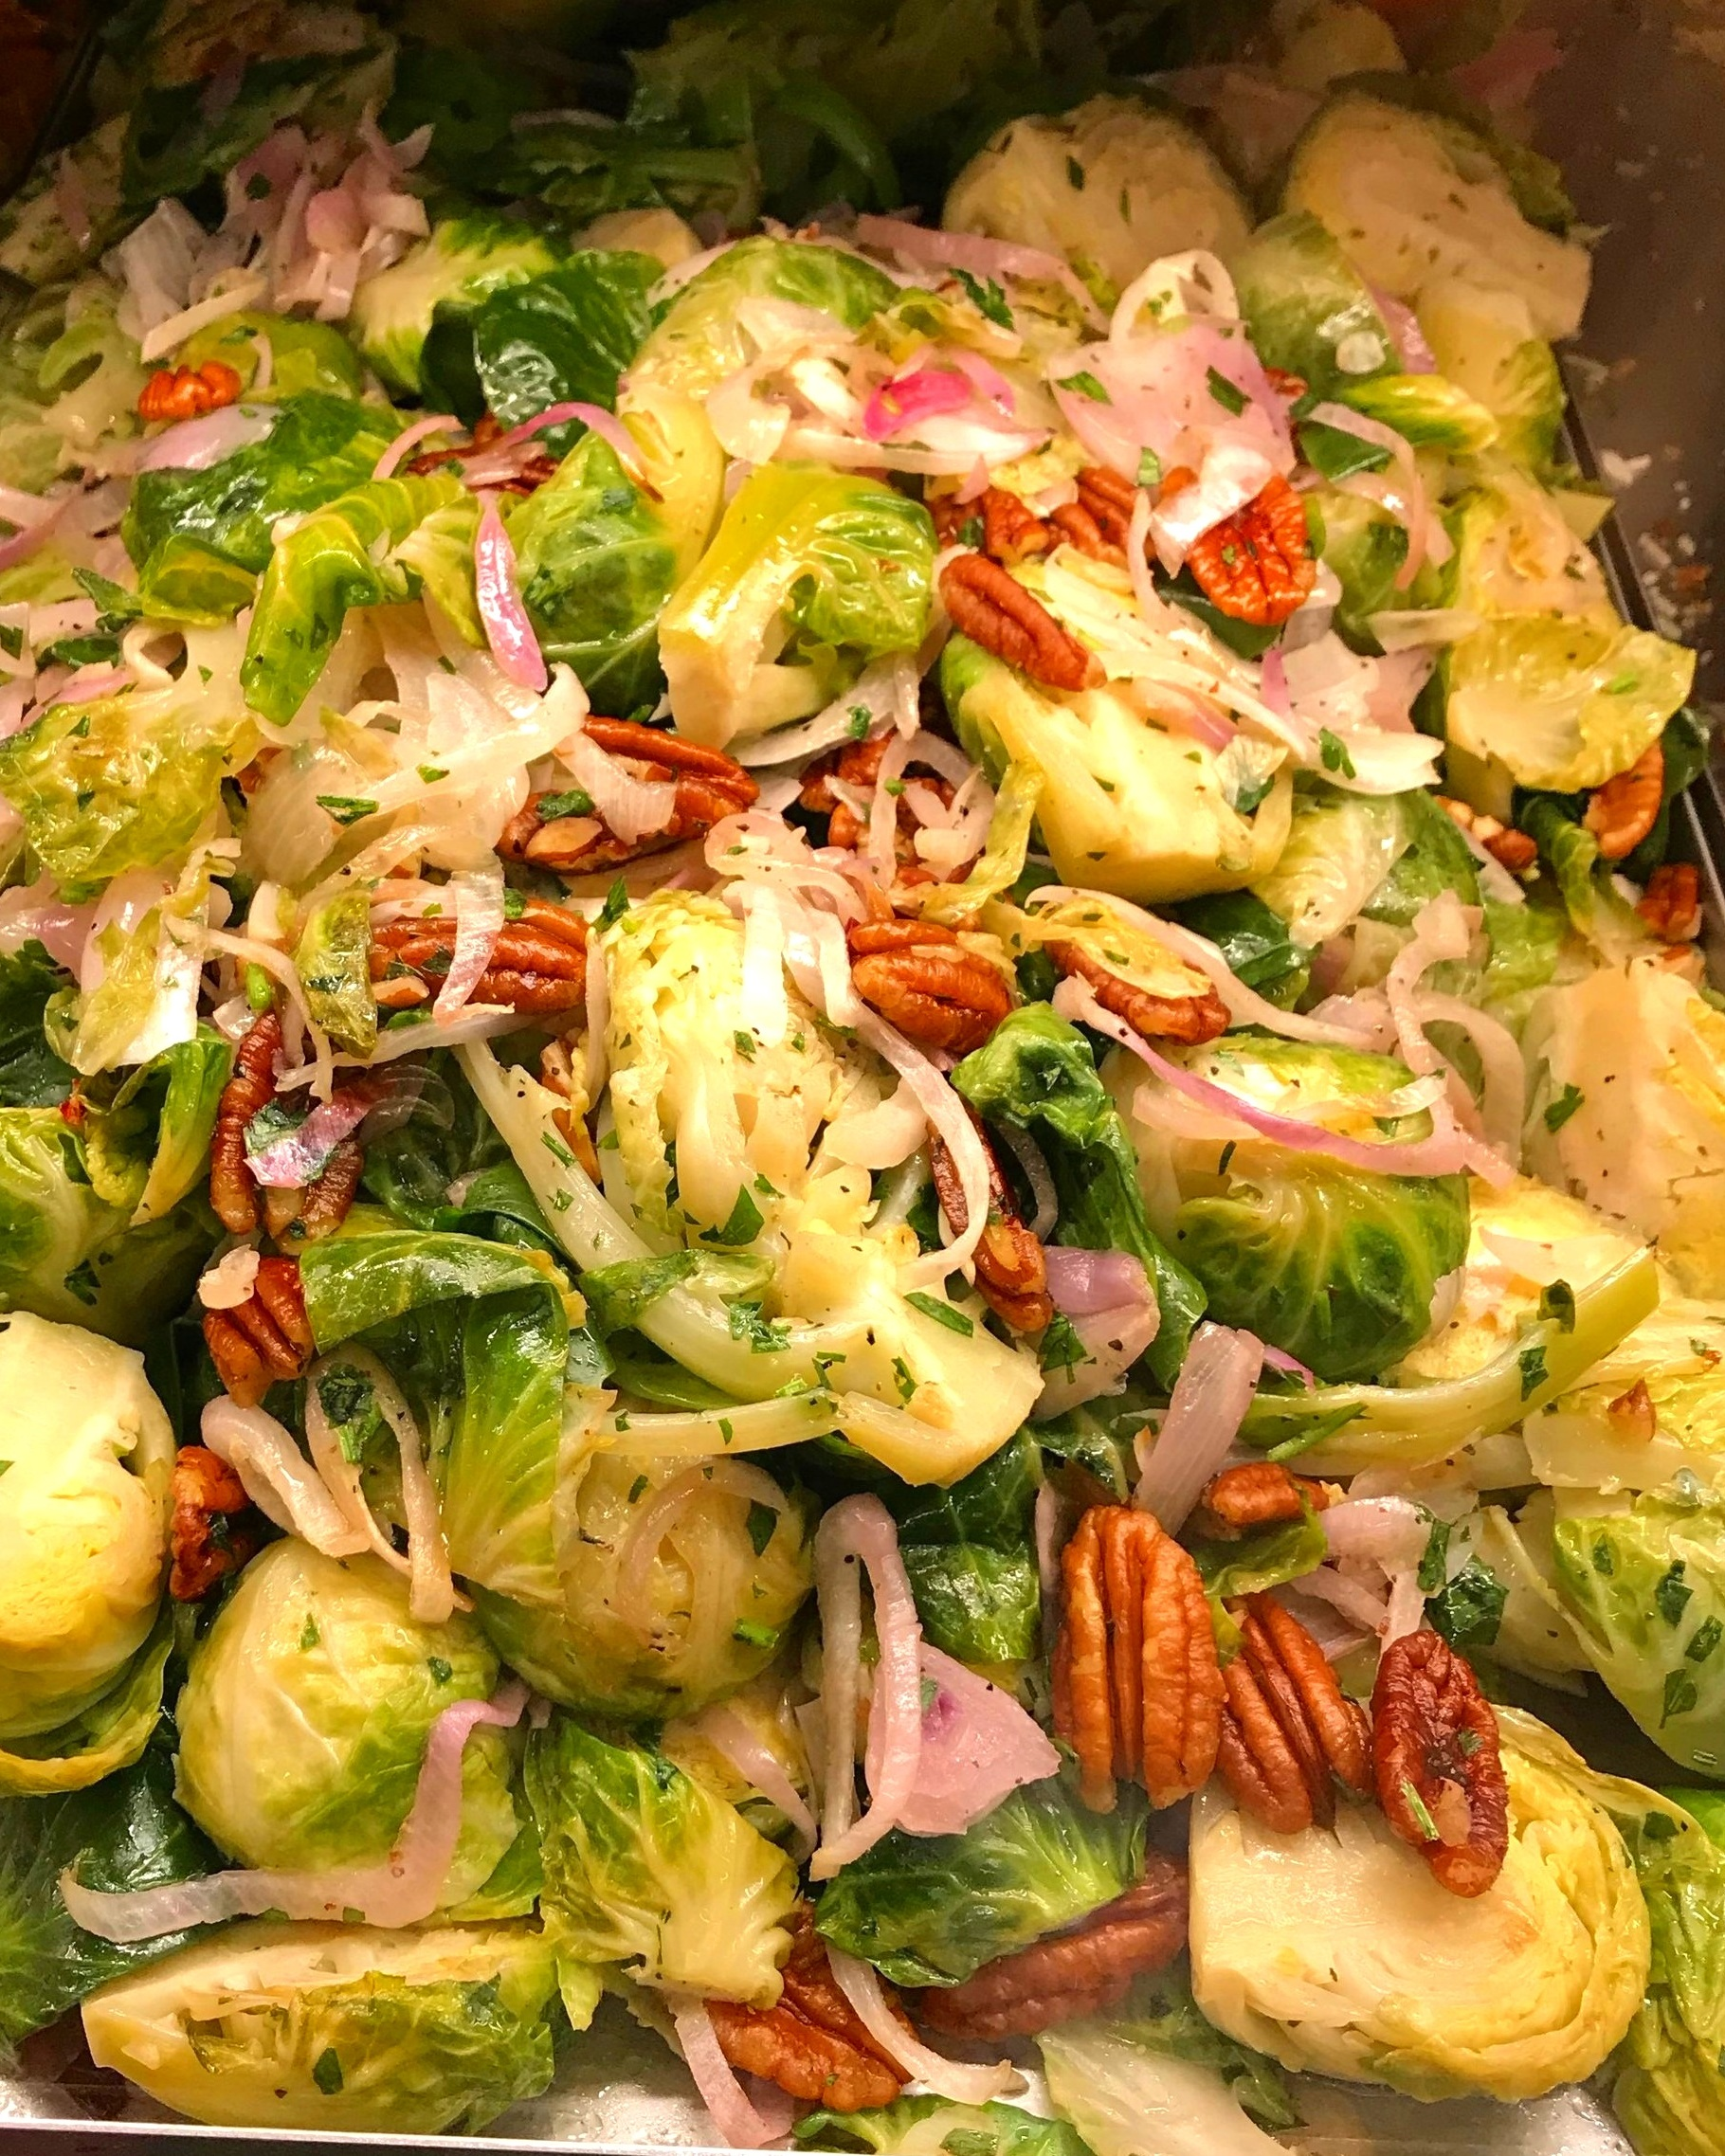 Once I committed to a plant-based kitchen, I've never looked back—Roasted Brussels Sprouts with pickled onions and pecans is a main course in our home now. (And yes! my hubby has gone right along with it).